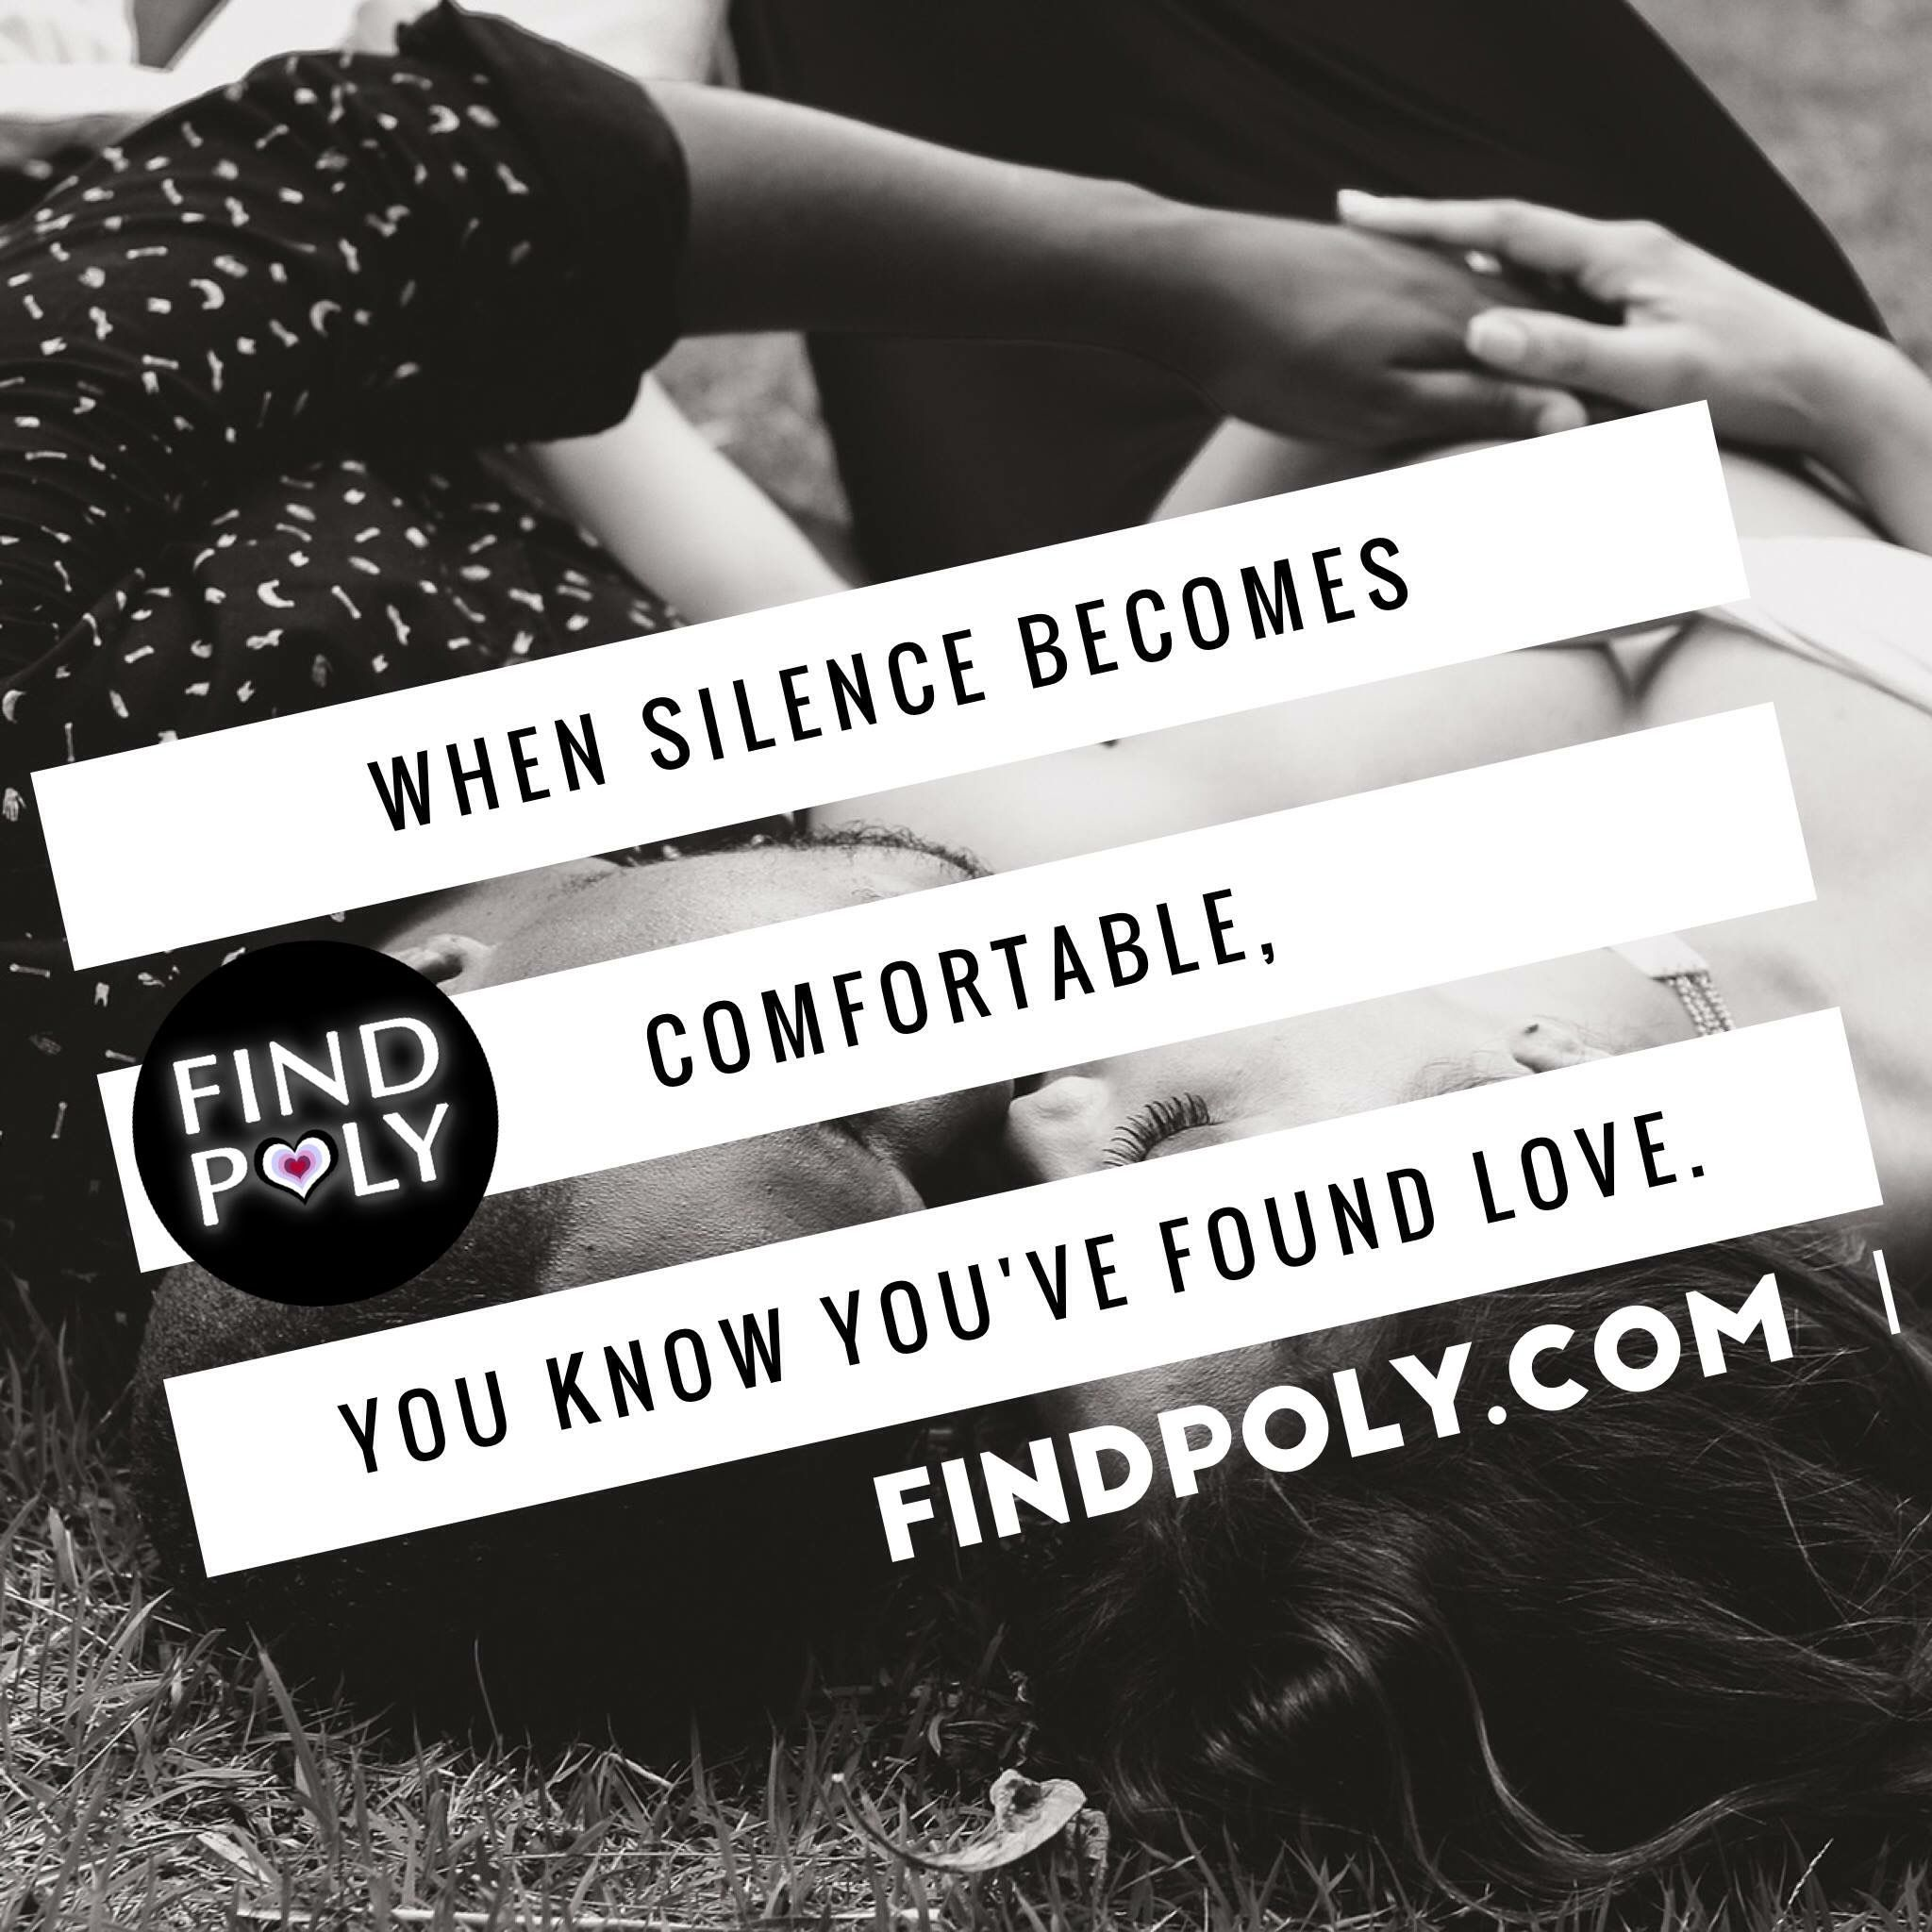 Pin By Findpoly On Healthy Relationships